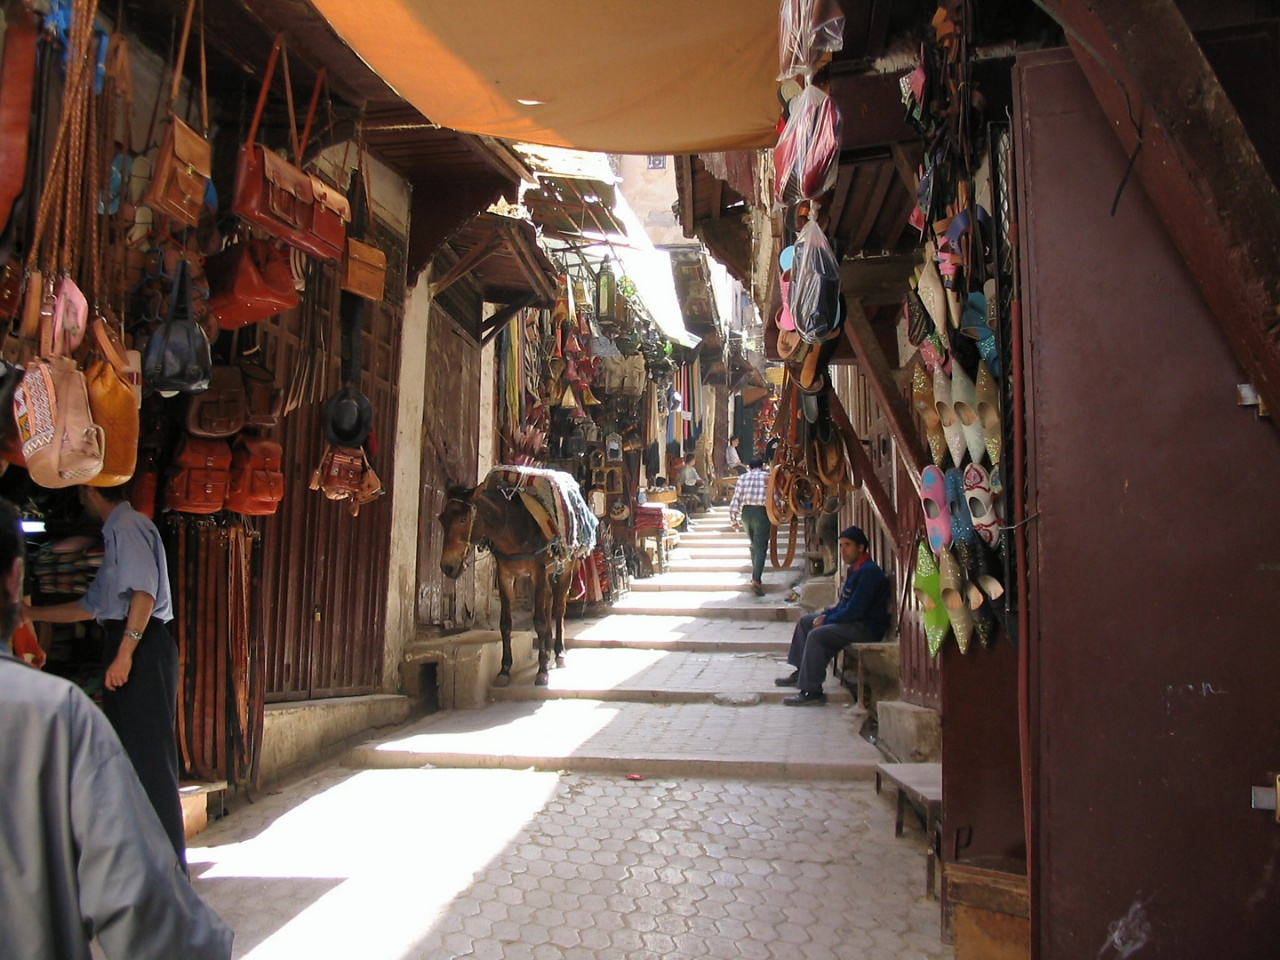 20040529_1721-Soukh_in_Fes_04